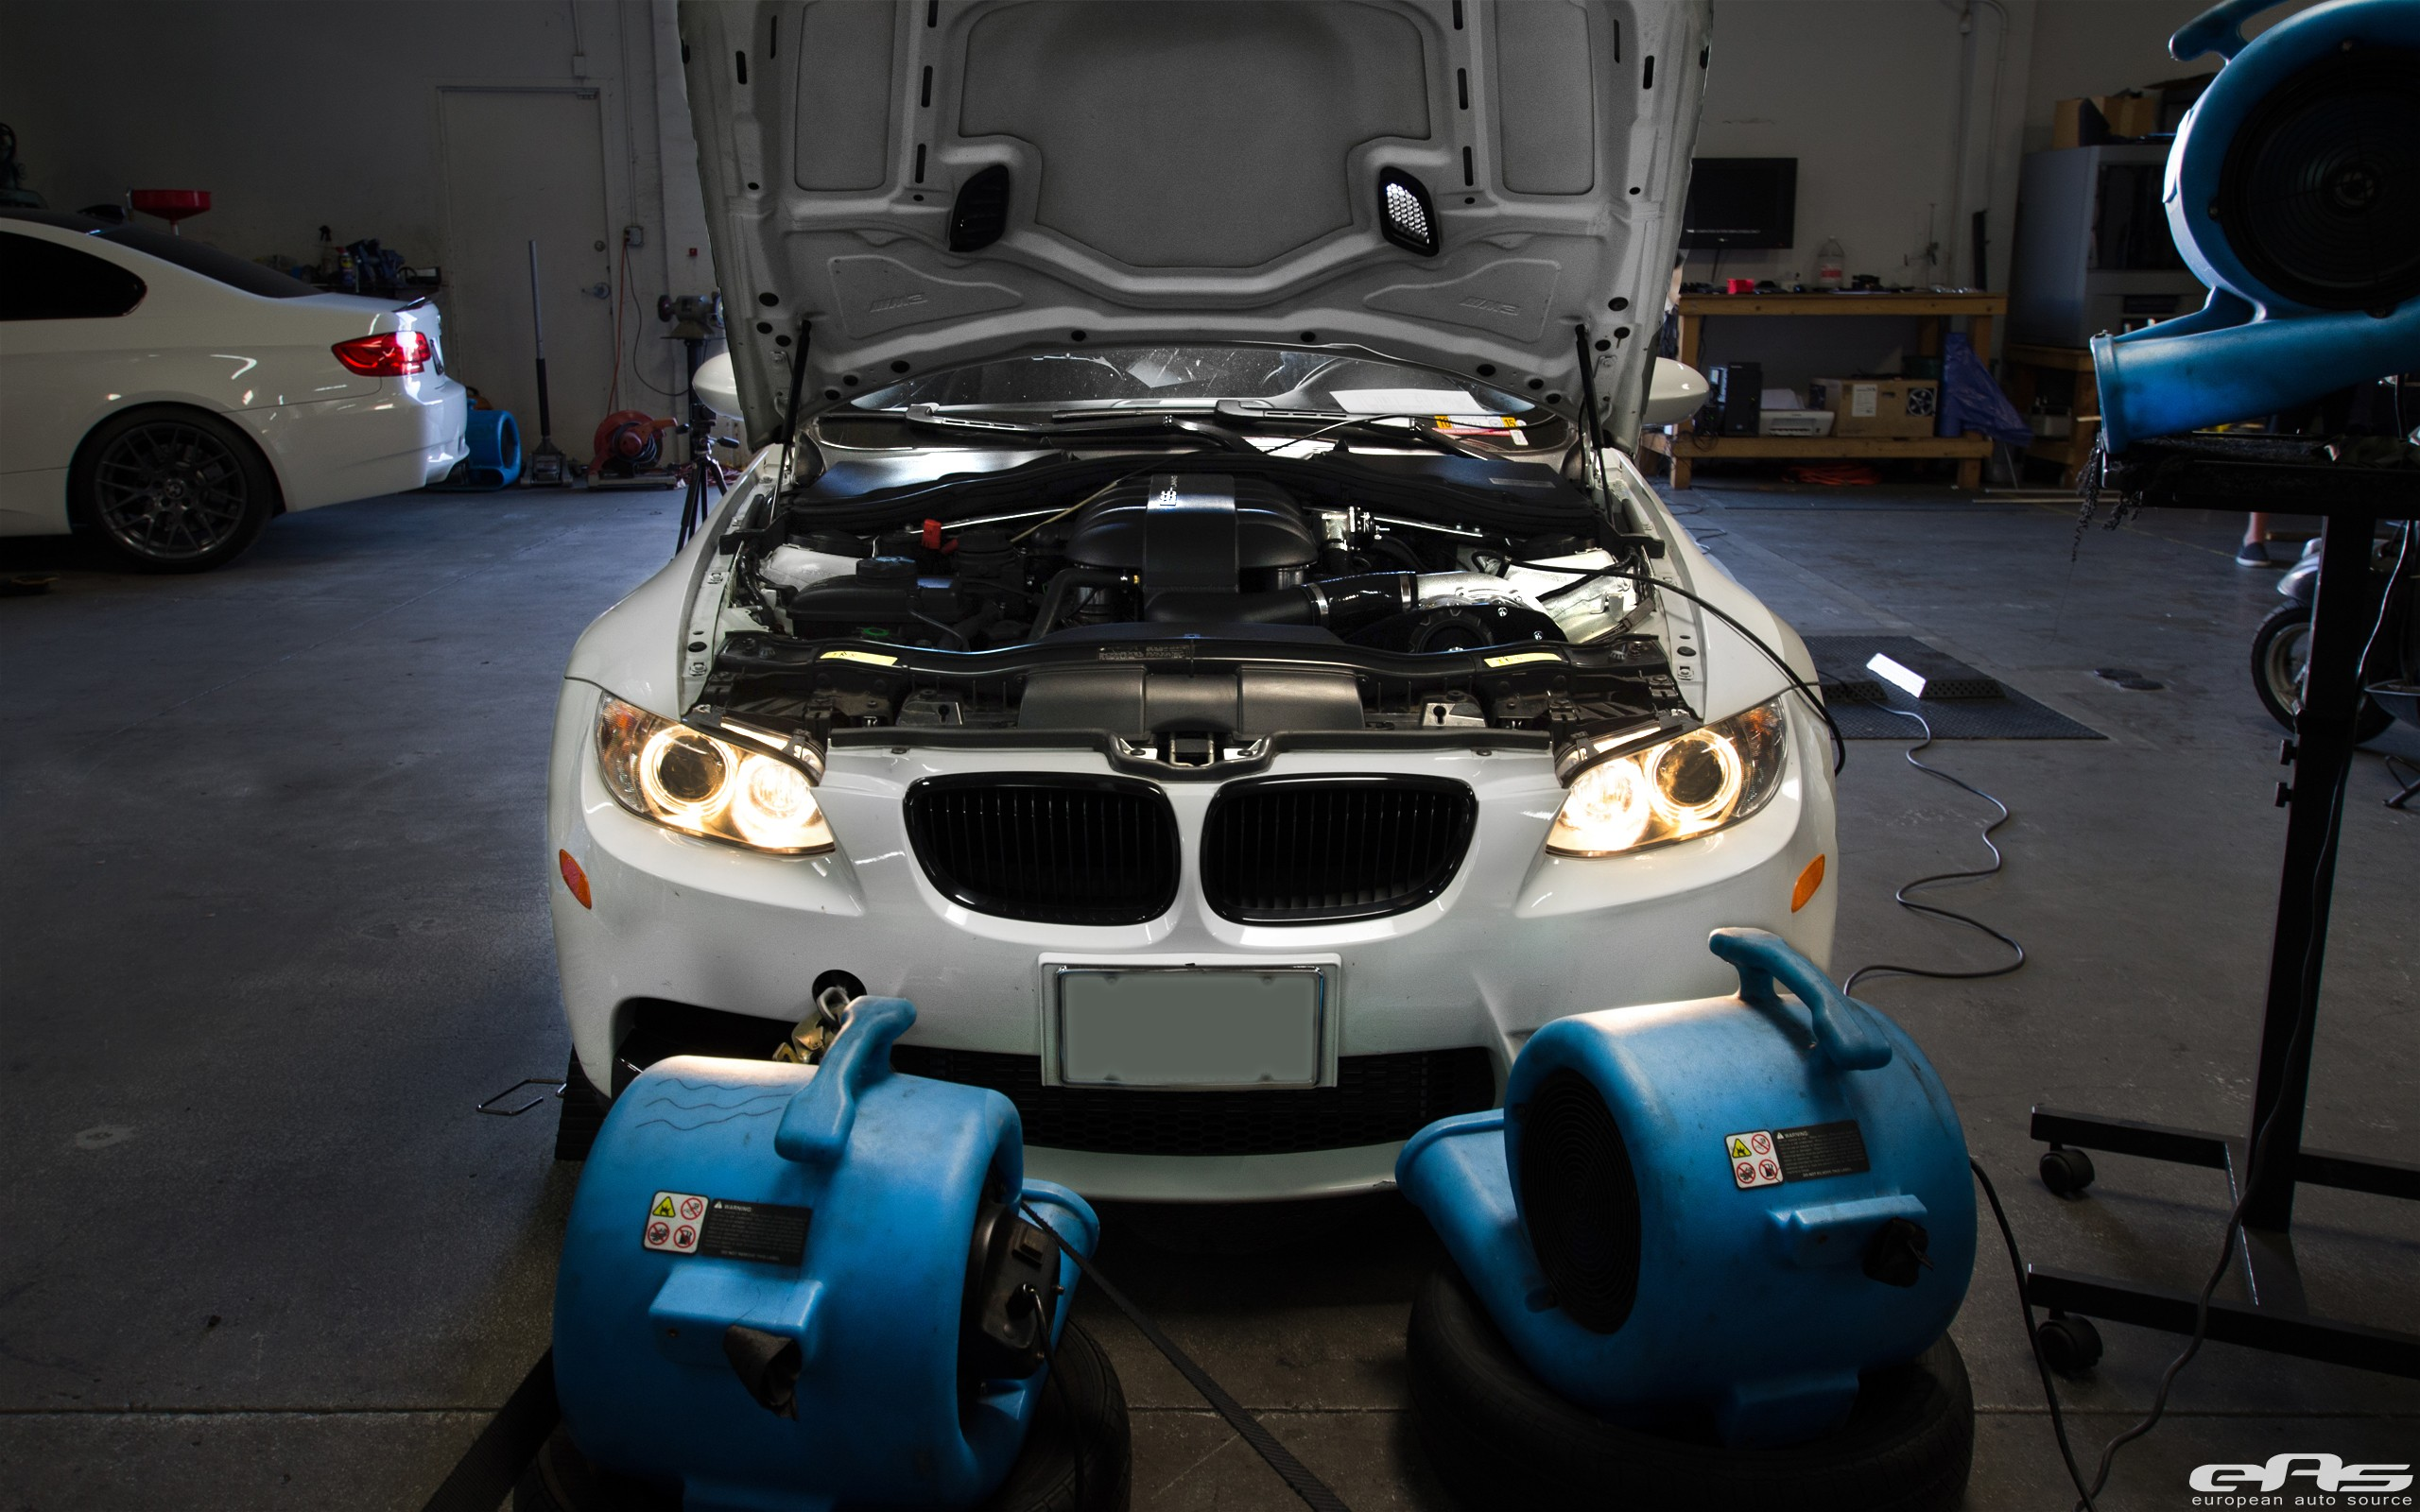 this-530-whp-bmw-e92-m3-might-be-one-perfect-mix-video_2.jpg